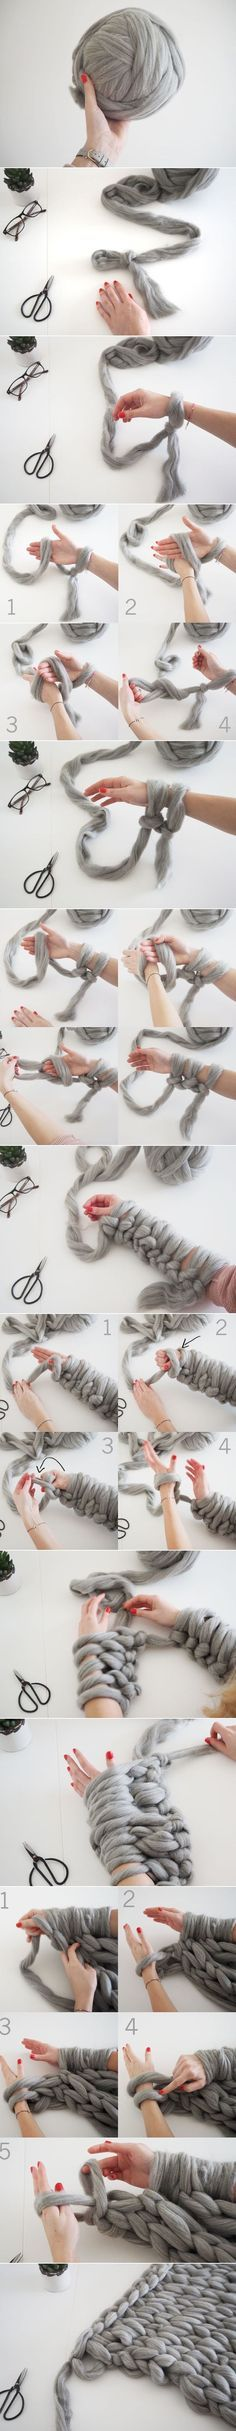 DIY - Knit a chunky blanket from wool roving   17 Cozy DIY Projects to Keep You Warm This Winter